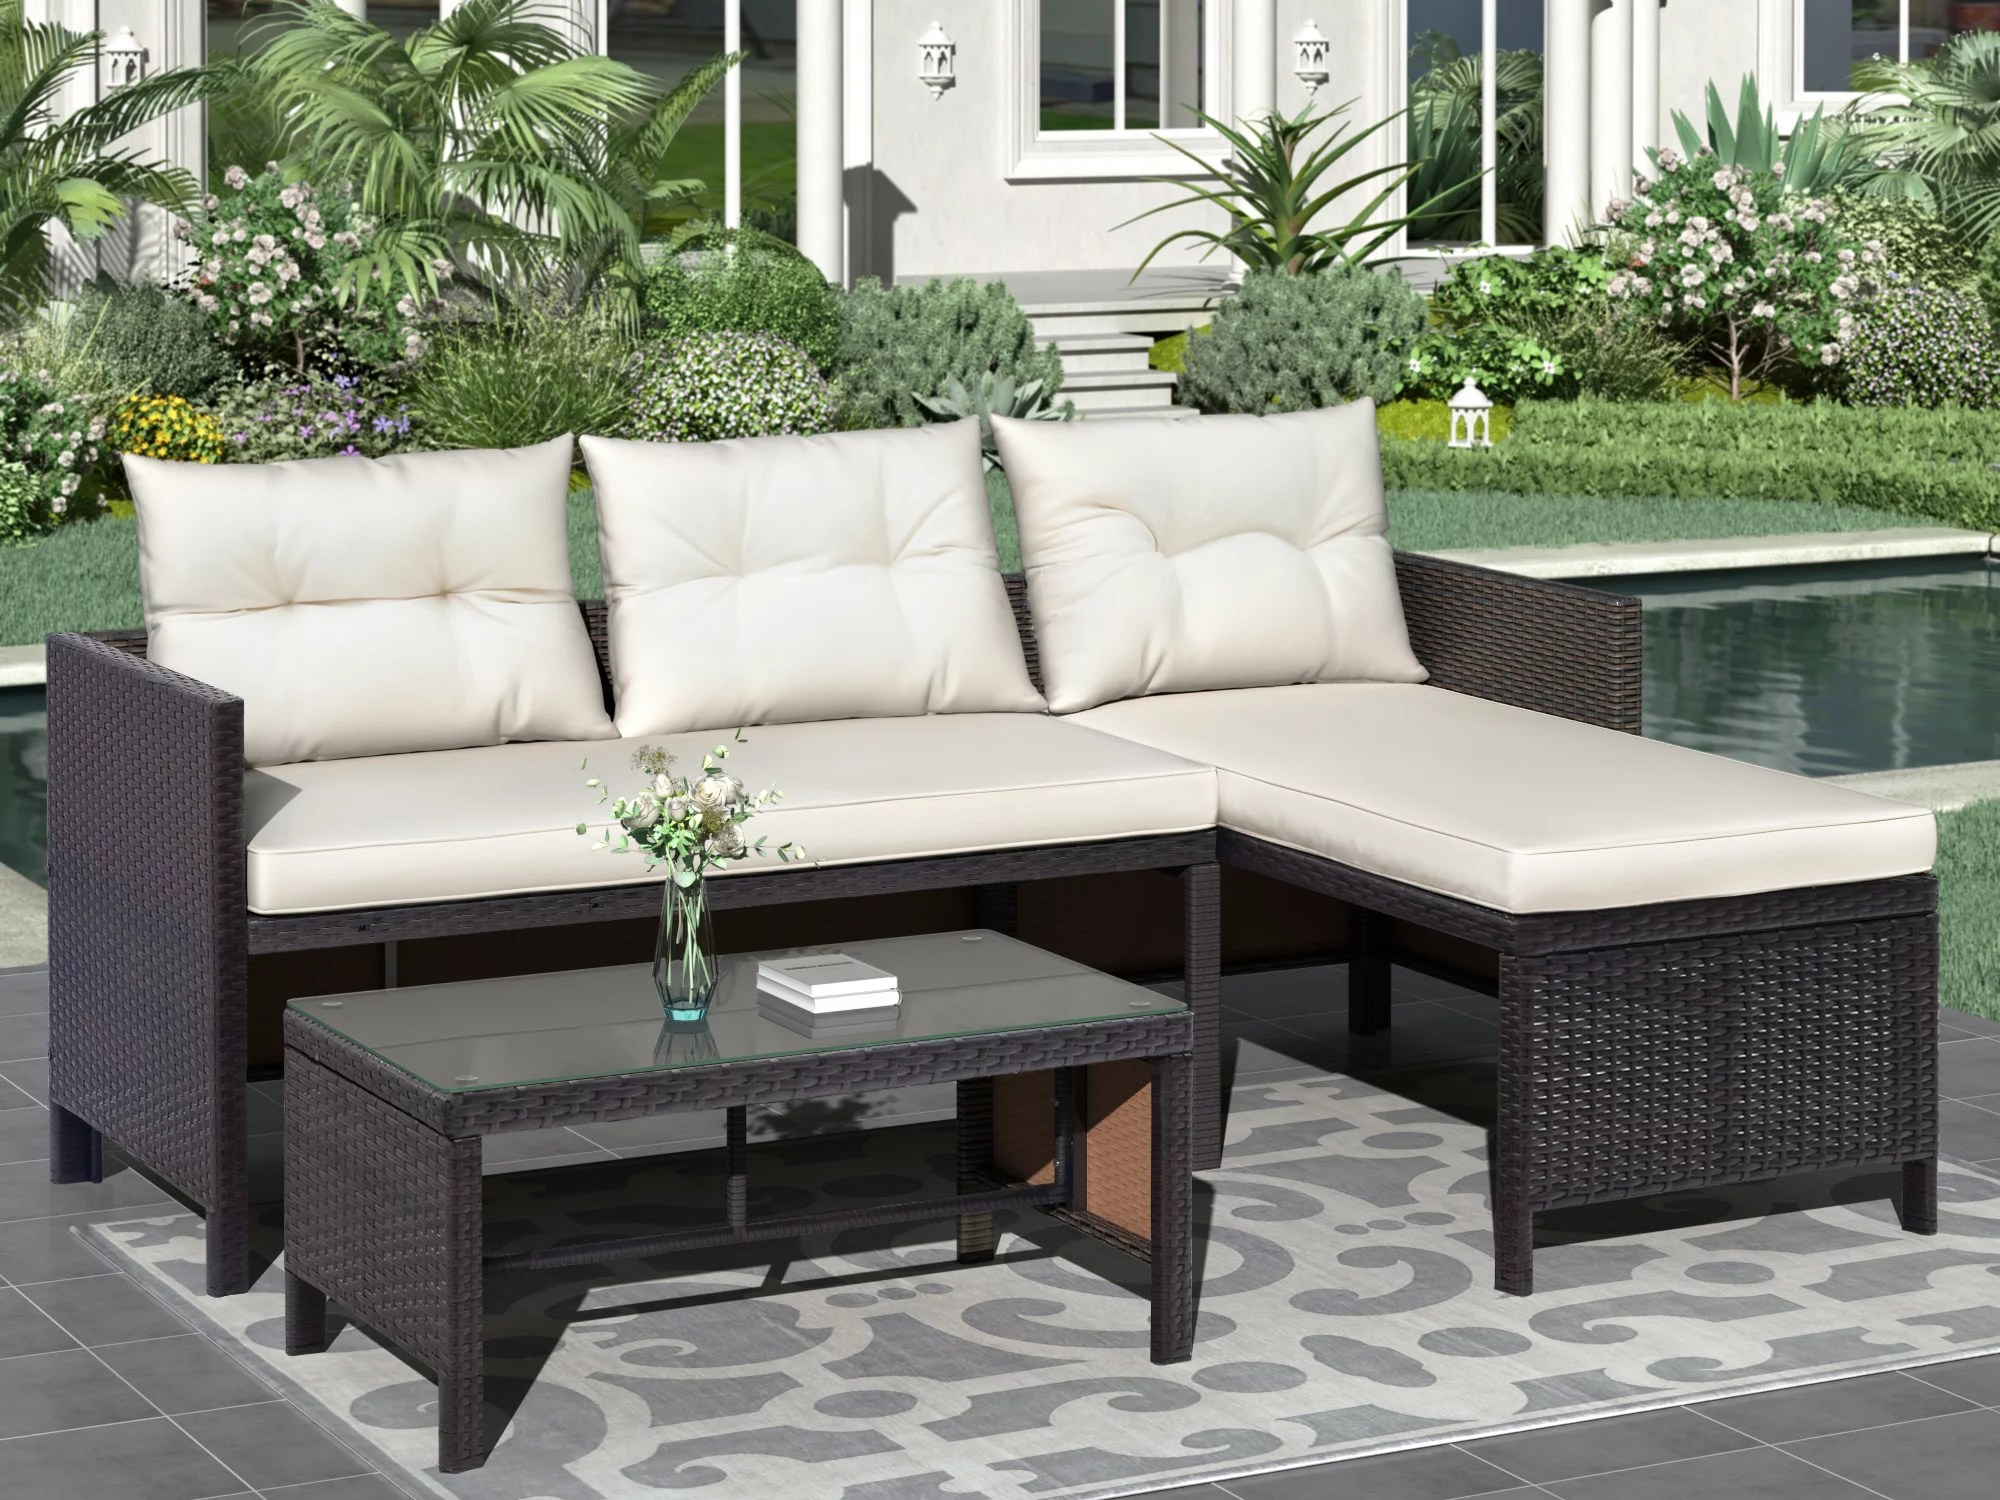 clearance 3 pieces patio furniture sectional set outdoor furniture set with two seater sofa lounge sofa table cushion pe rattan wicker bistro